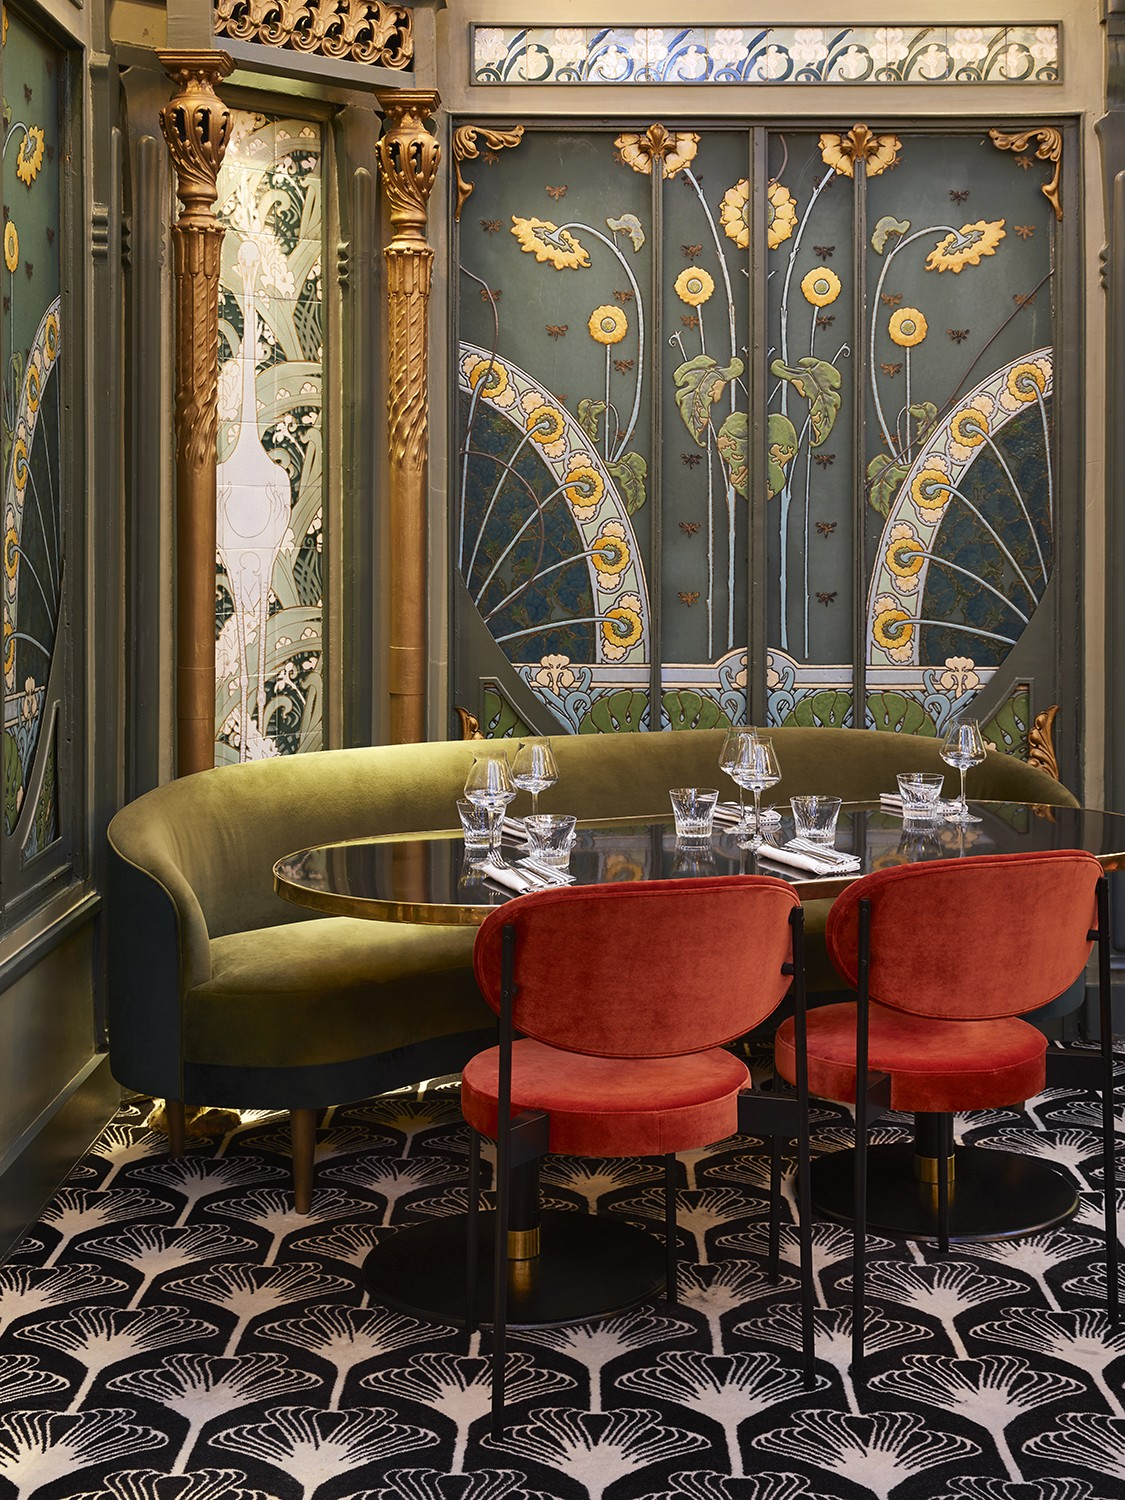 Beefbar Paris, the New Jewel of Interior Design by Humbert & Poyet interior design Beefbar Paris, the New Jewel of Interior Design by Humbert & Poyet paris restaurant maison object 20198